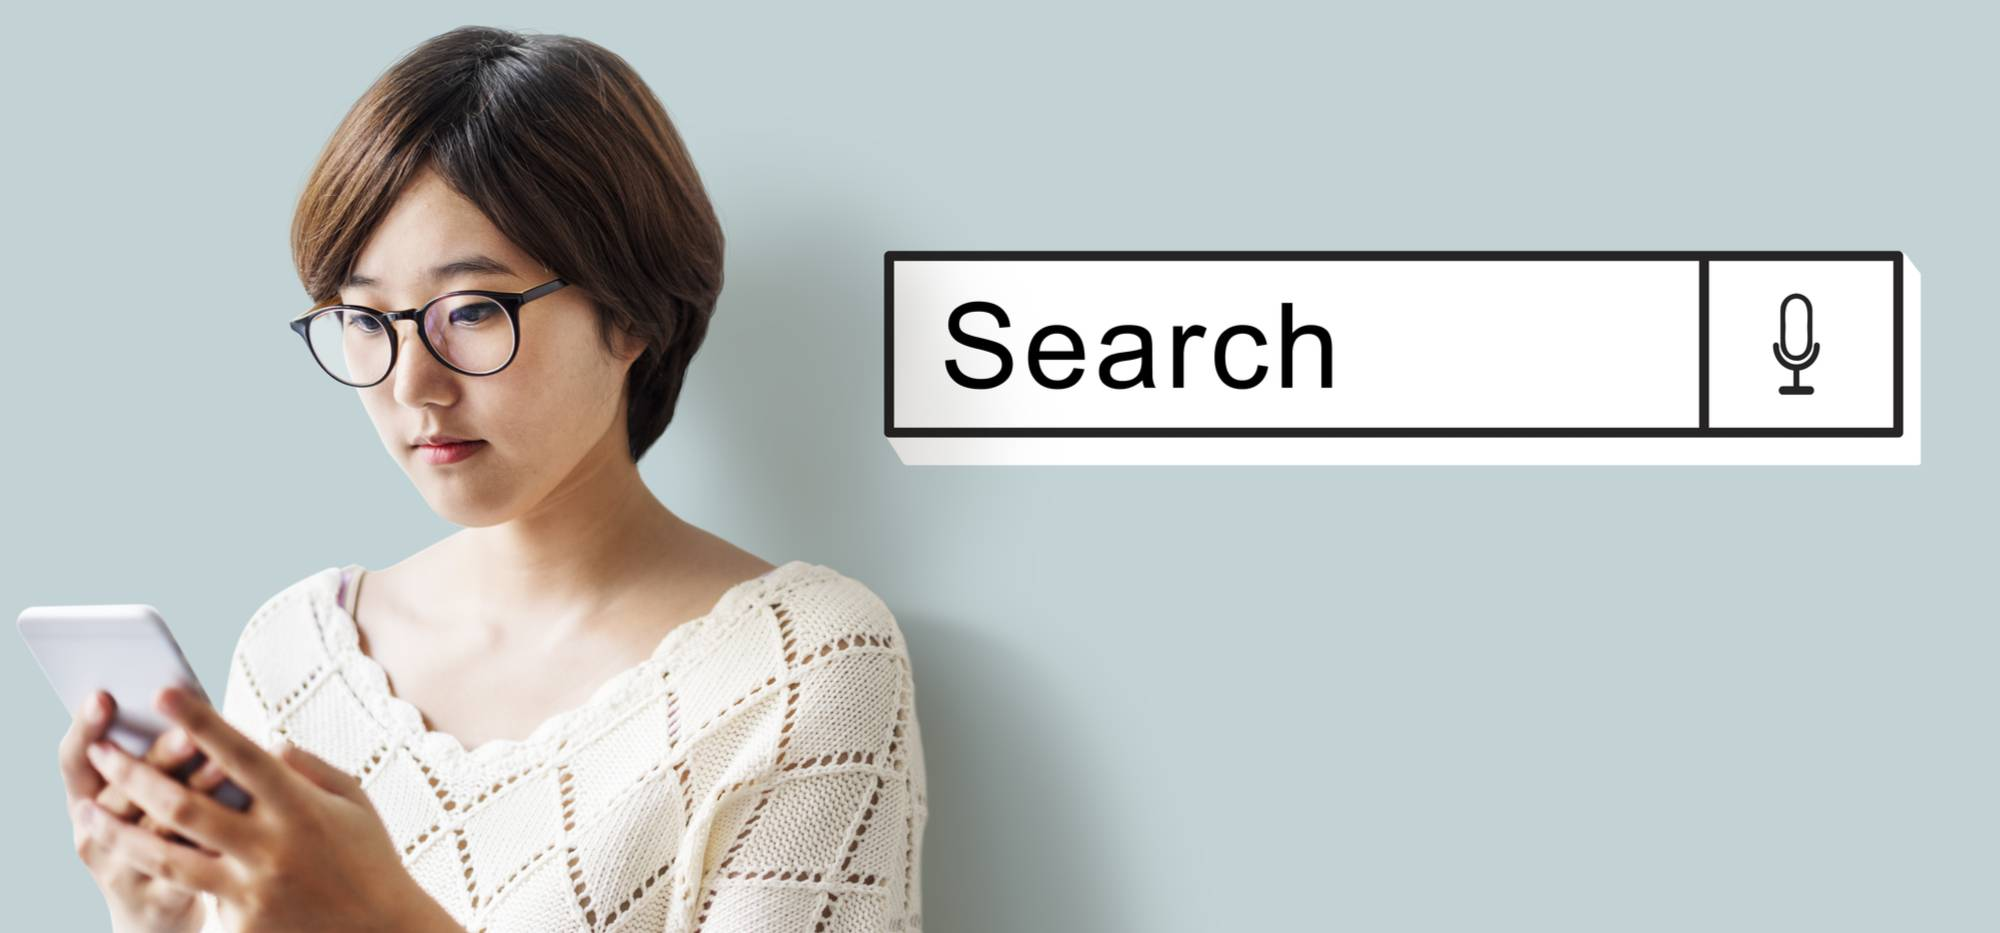 Search Engine Optimisation - SEO (Image)